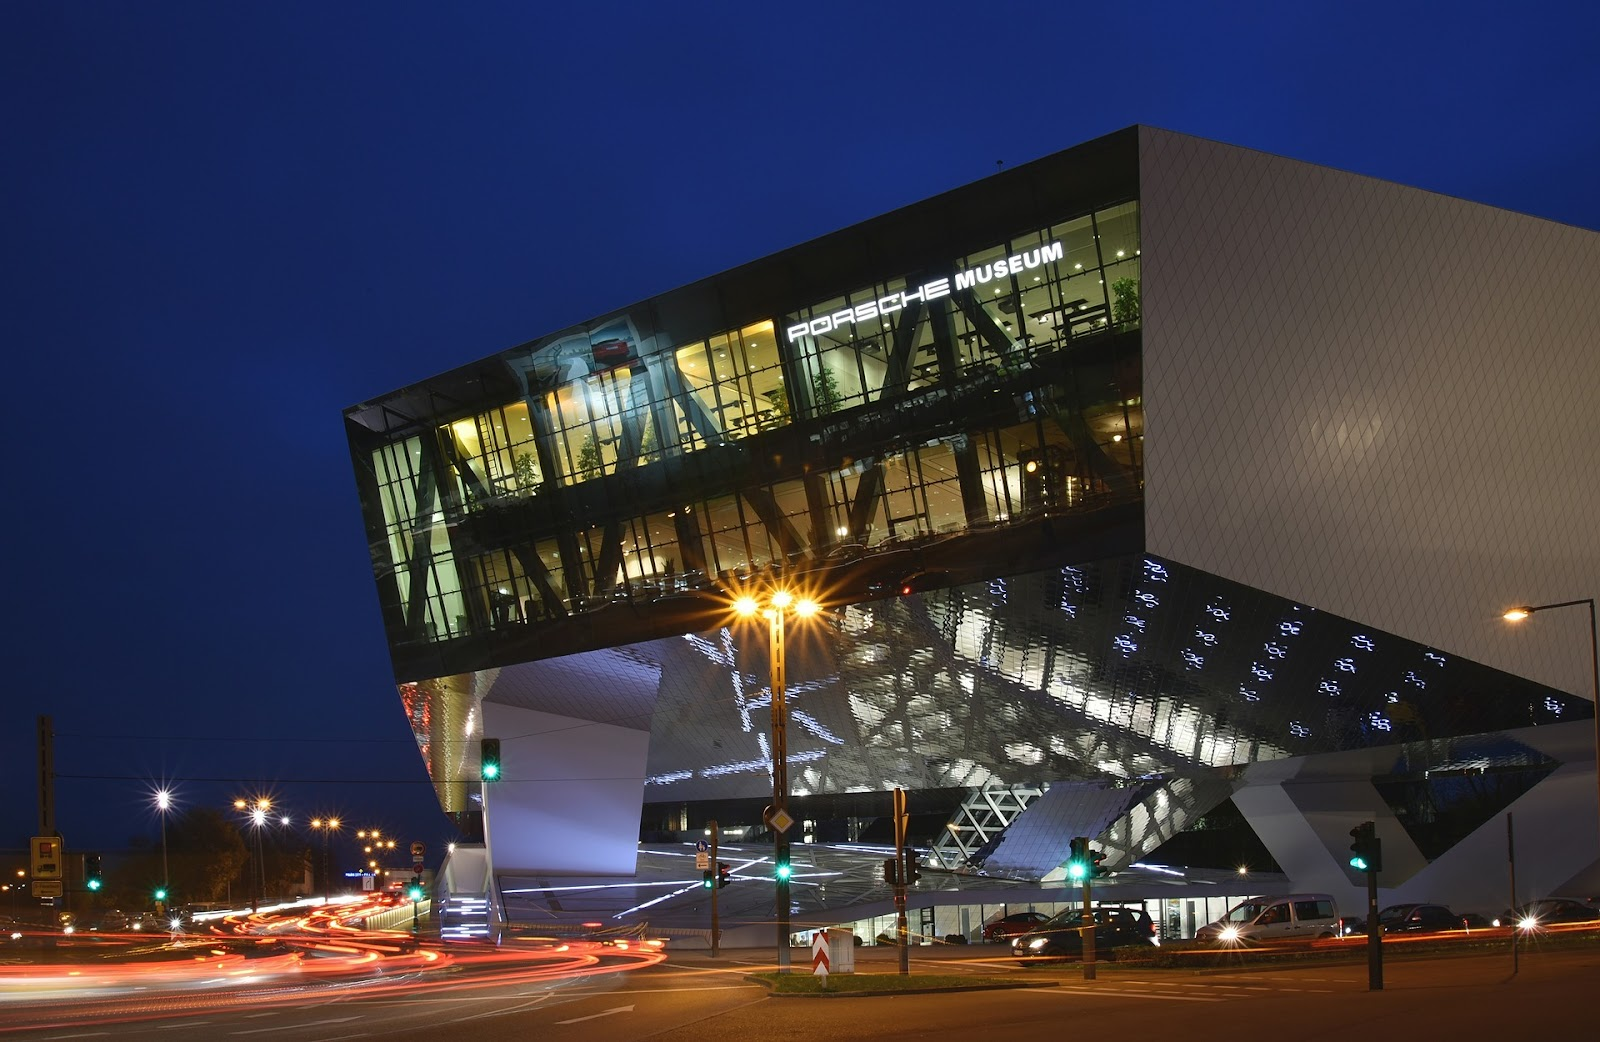 porsche museum main building modern architecture seen from nearby street at night time